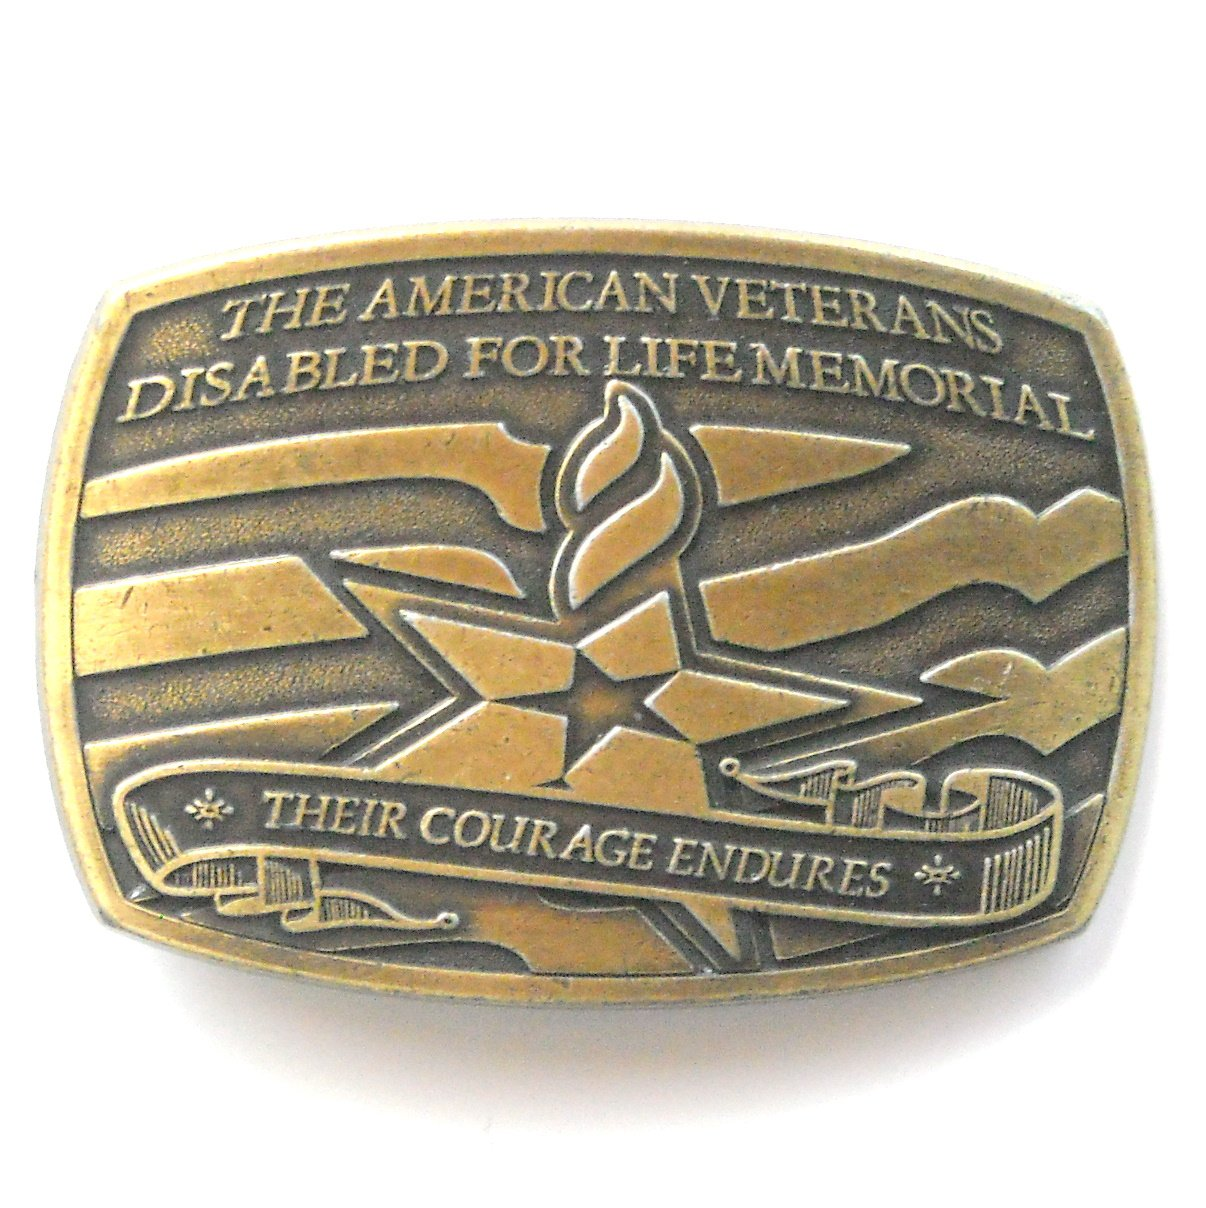 American Veterans Disabled For Life Memorial metal alloy belt buckle